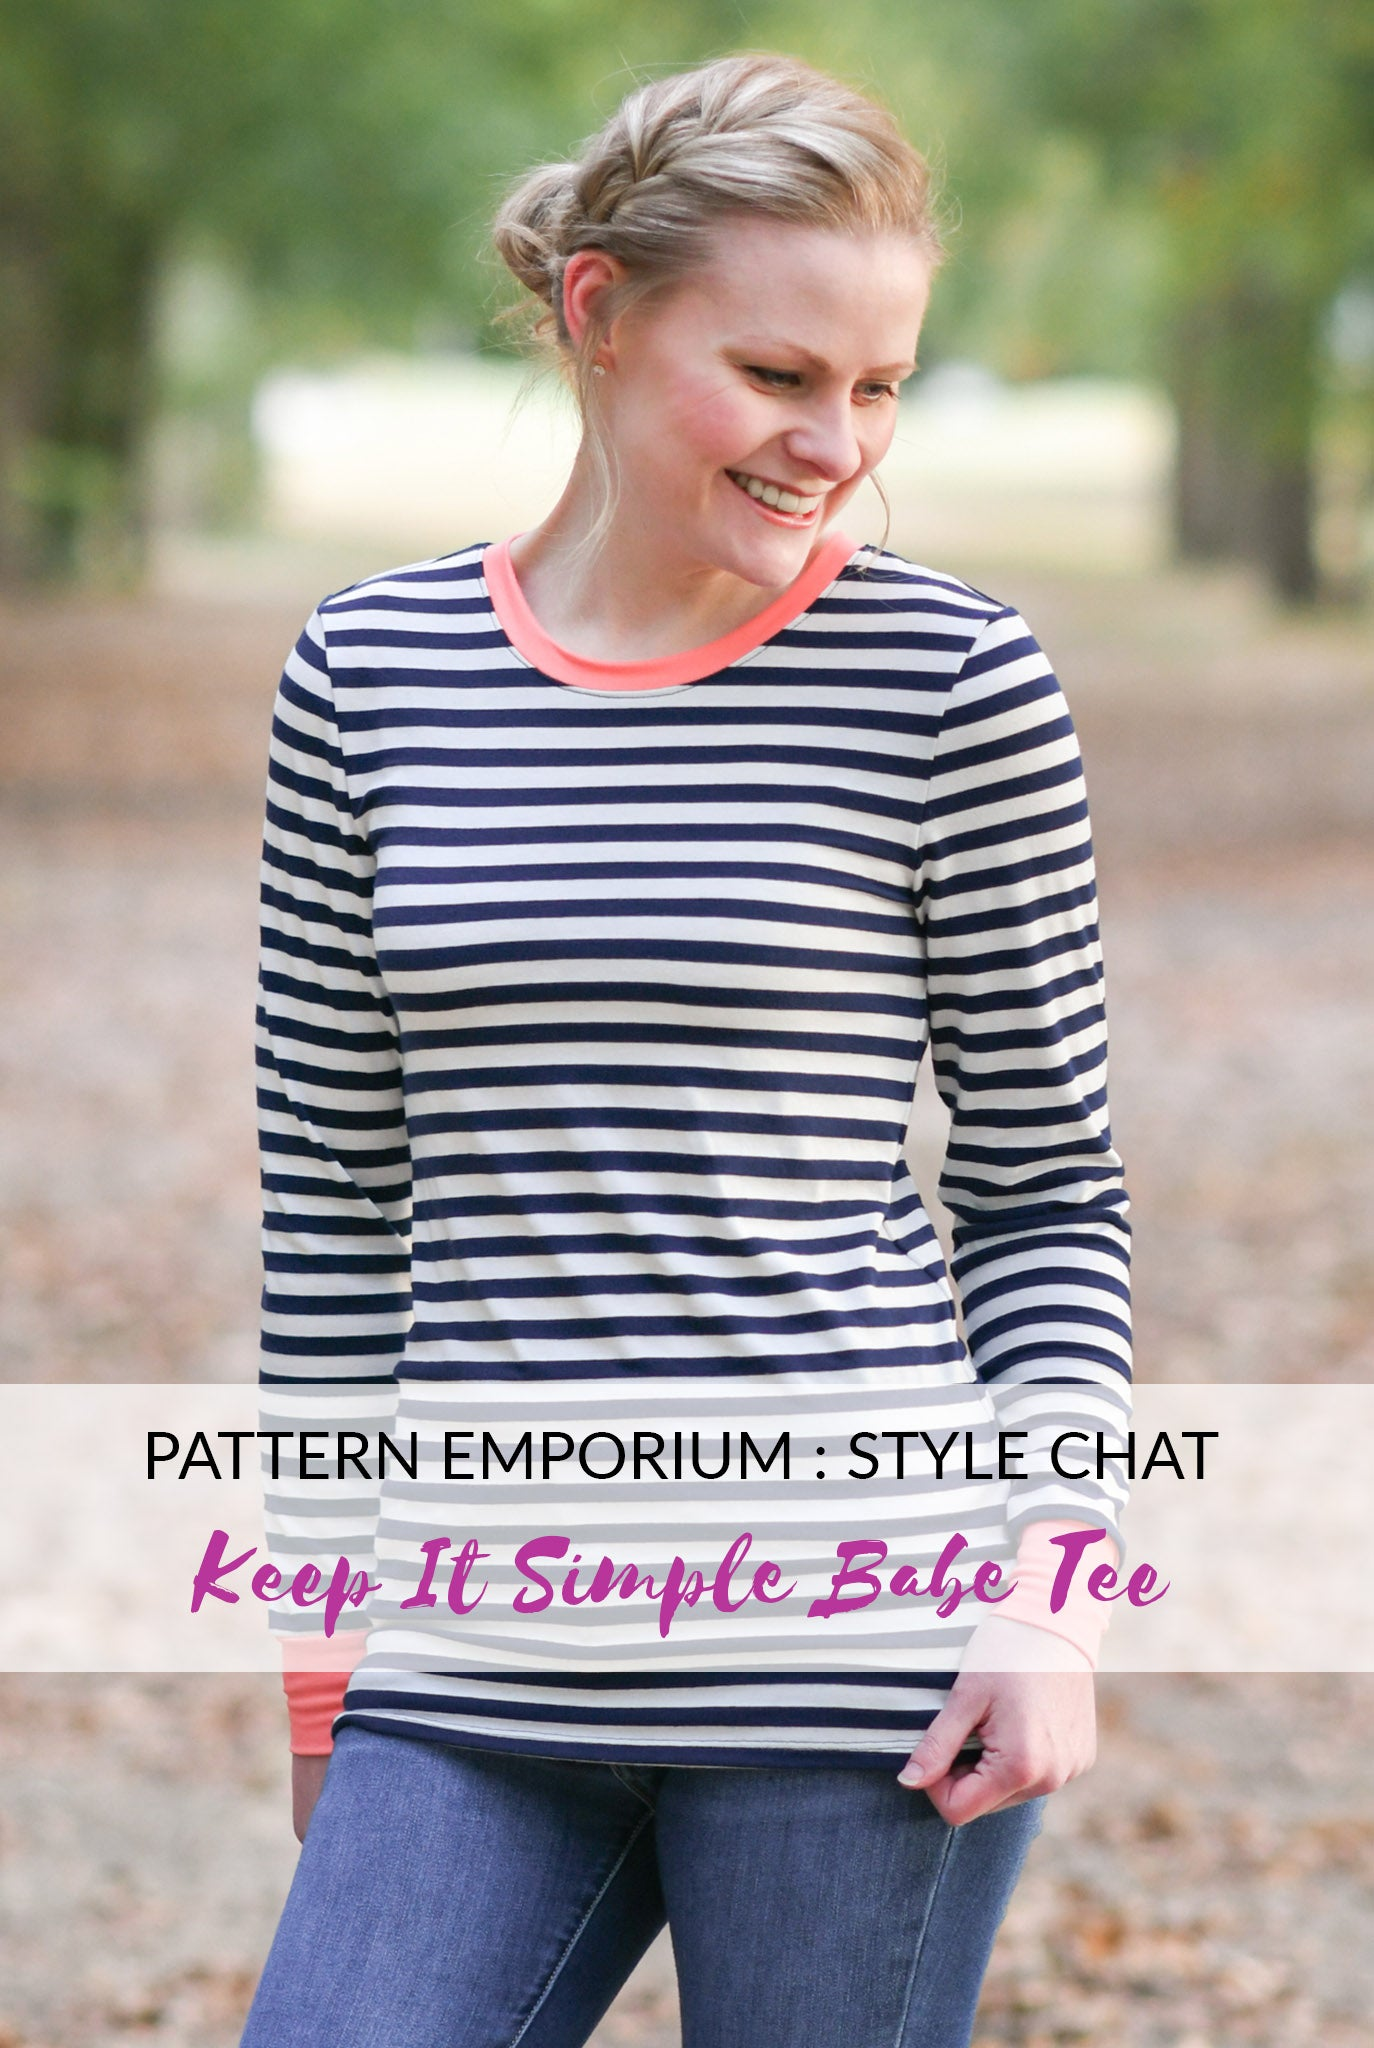 Style Chat : Keep It Simple Babe Tee